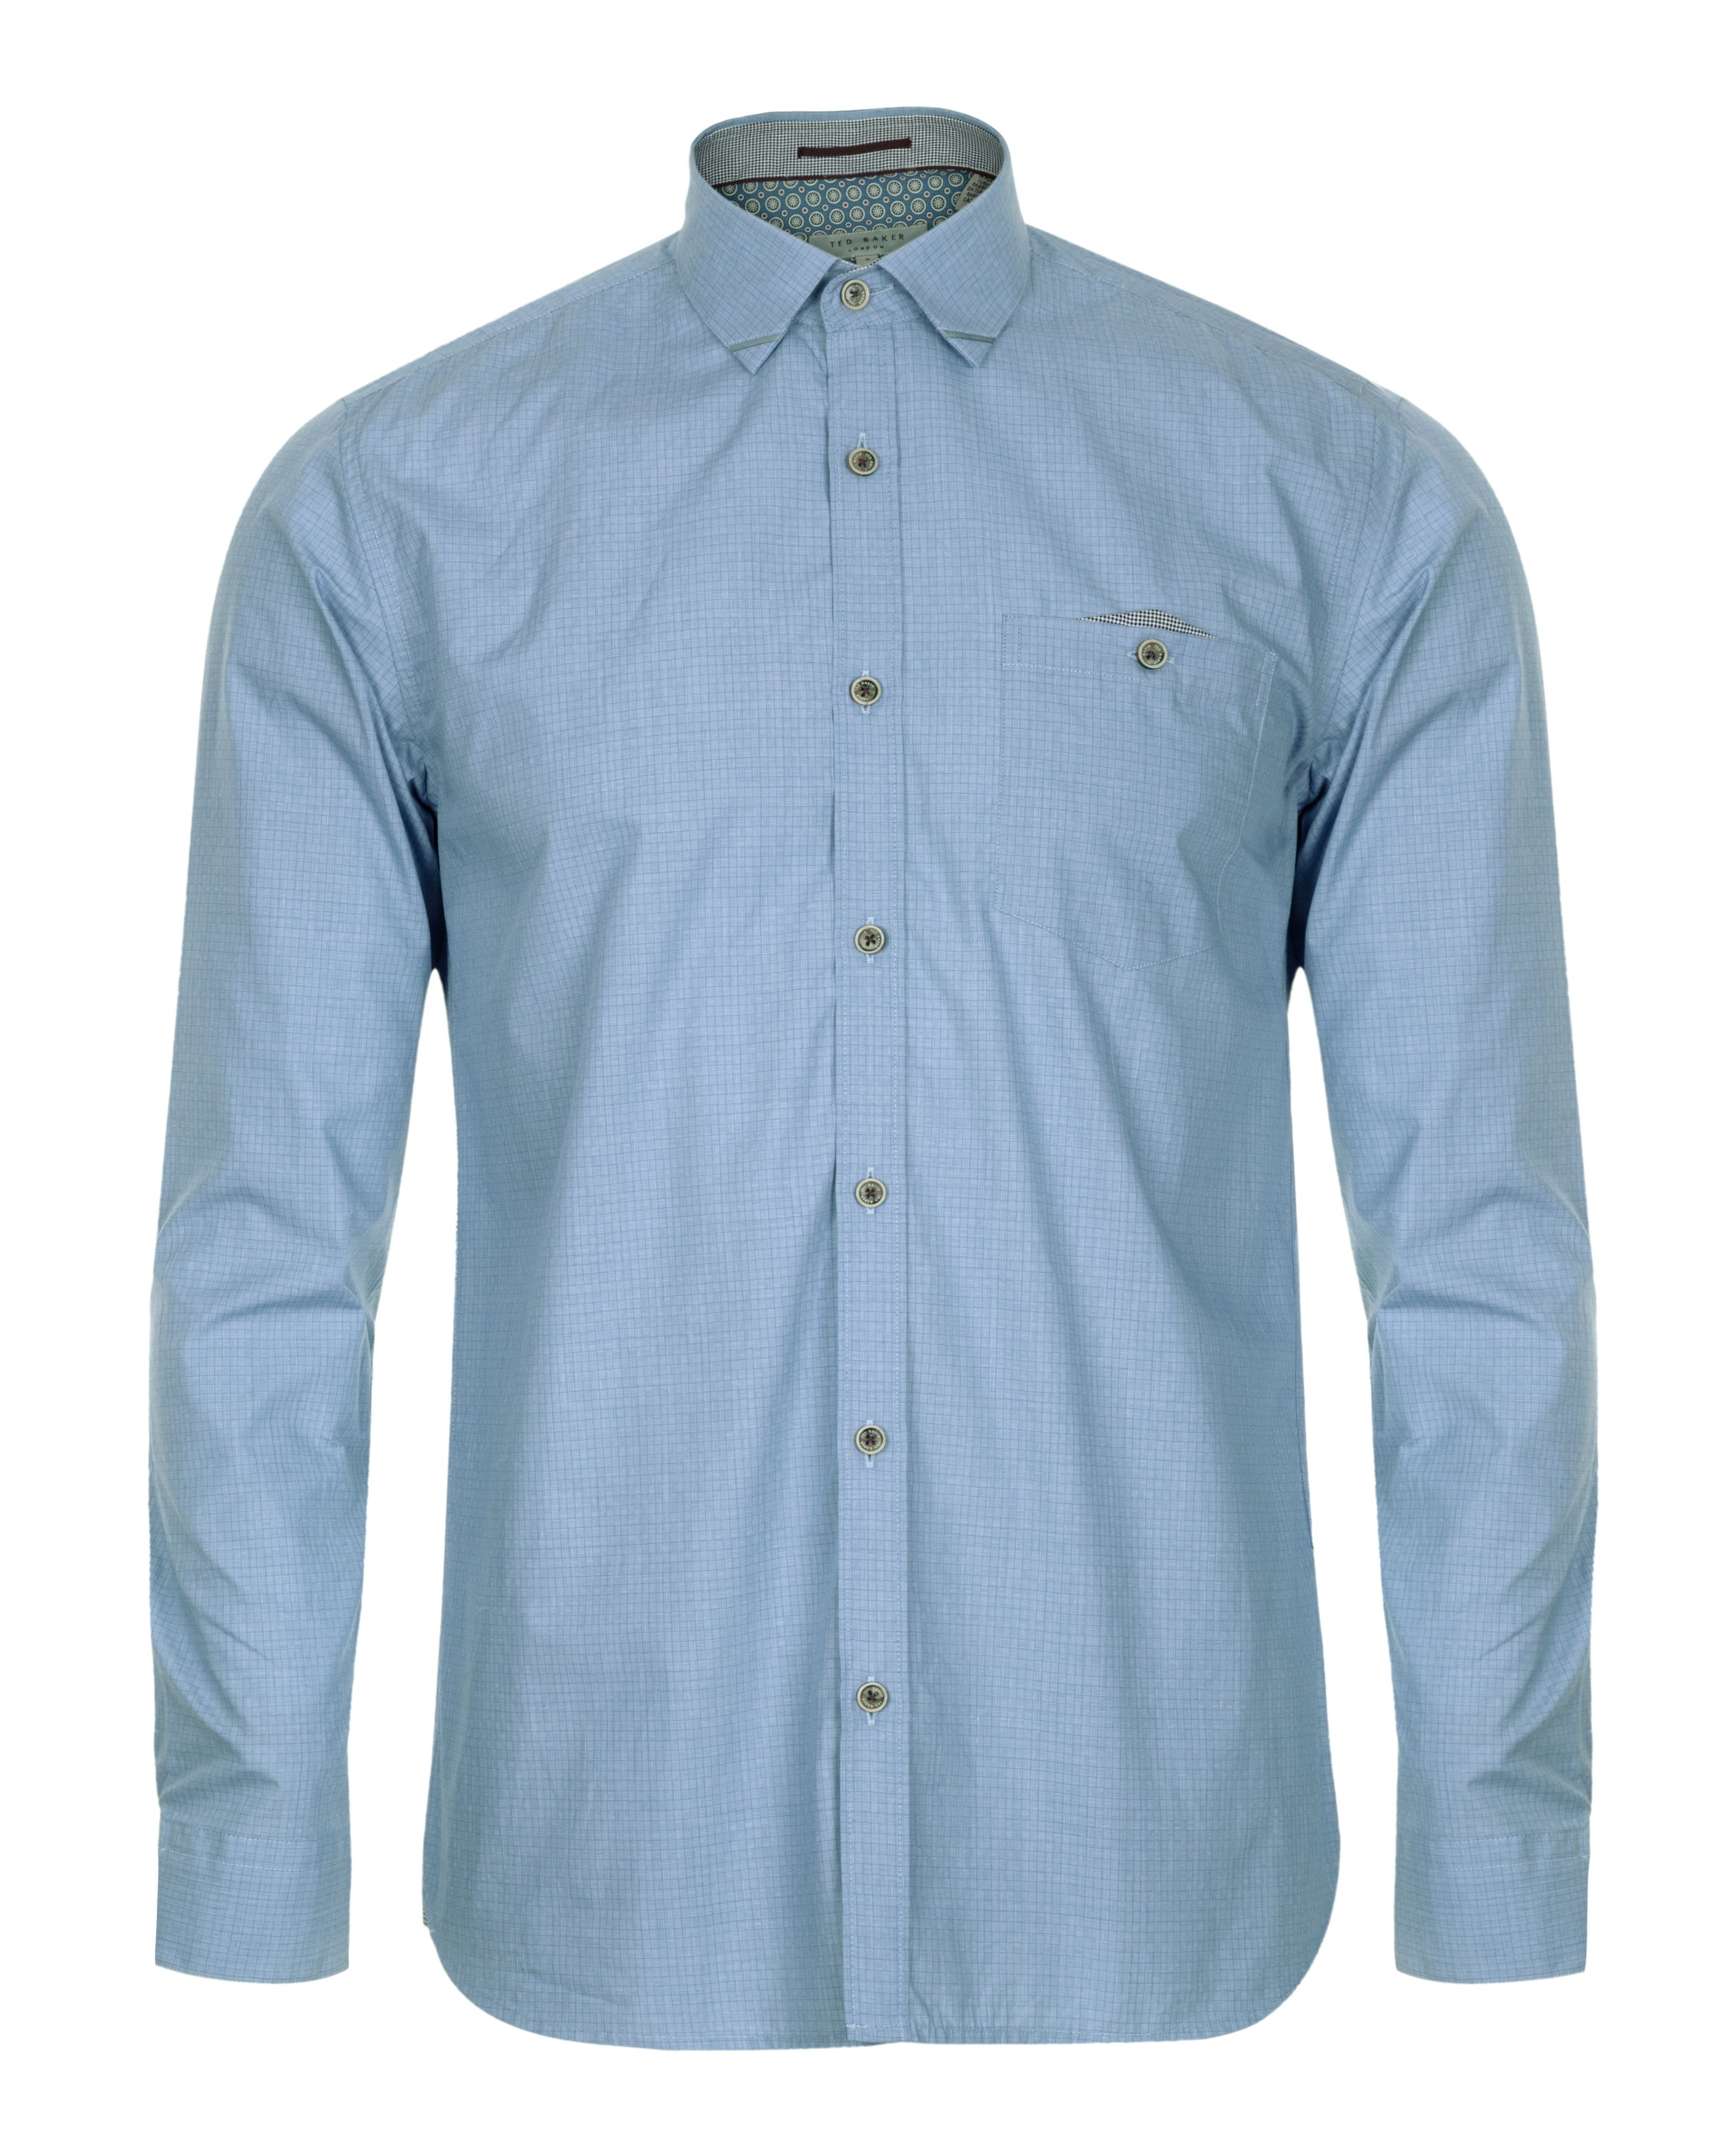 Wellfly pocket detail square weave shirt